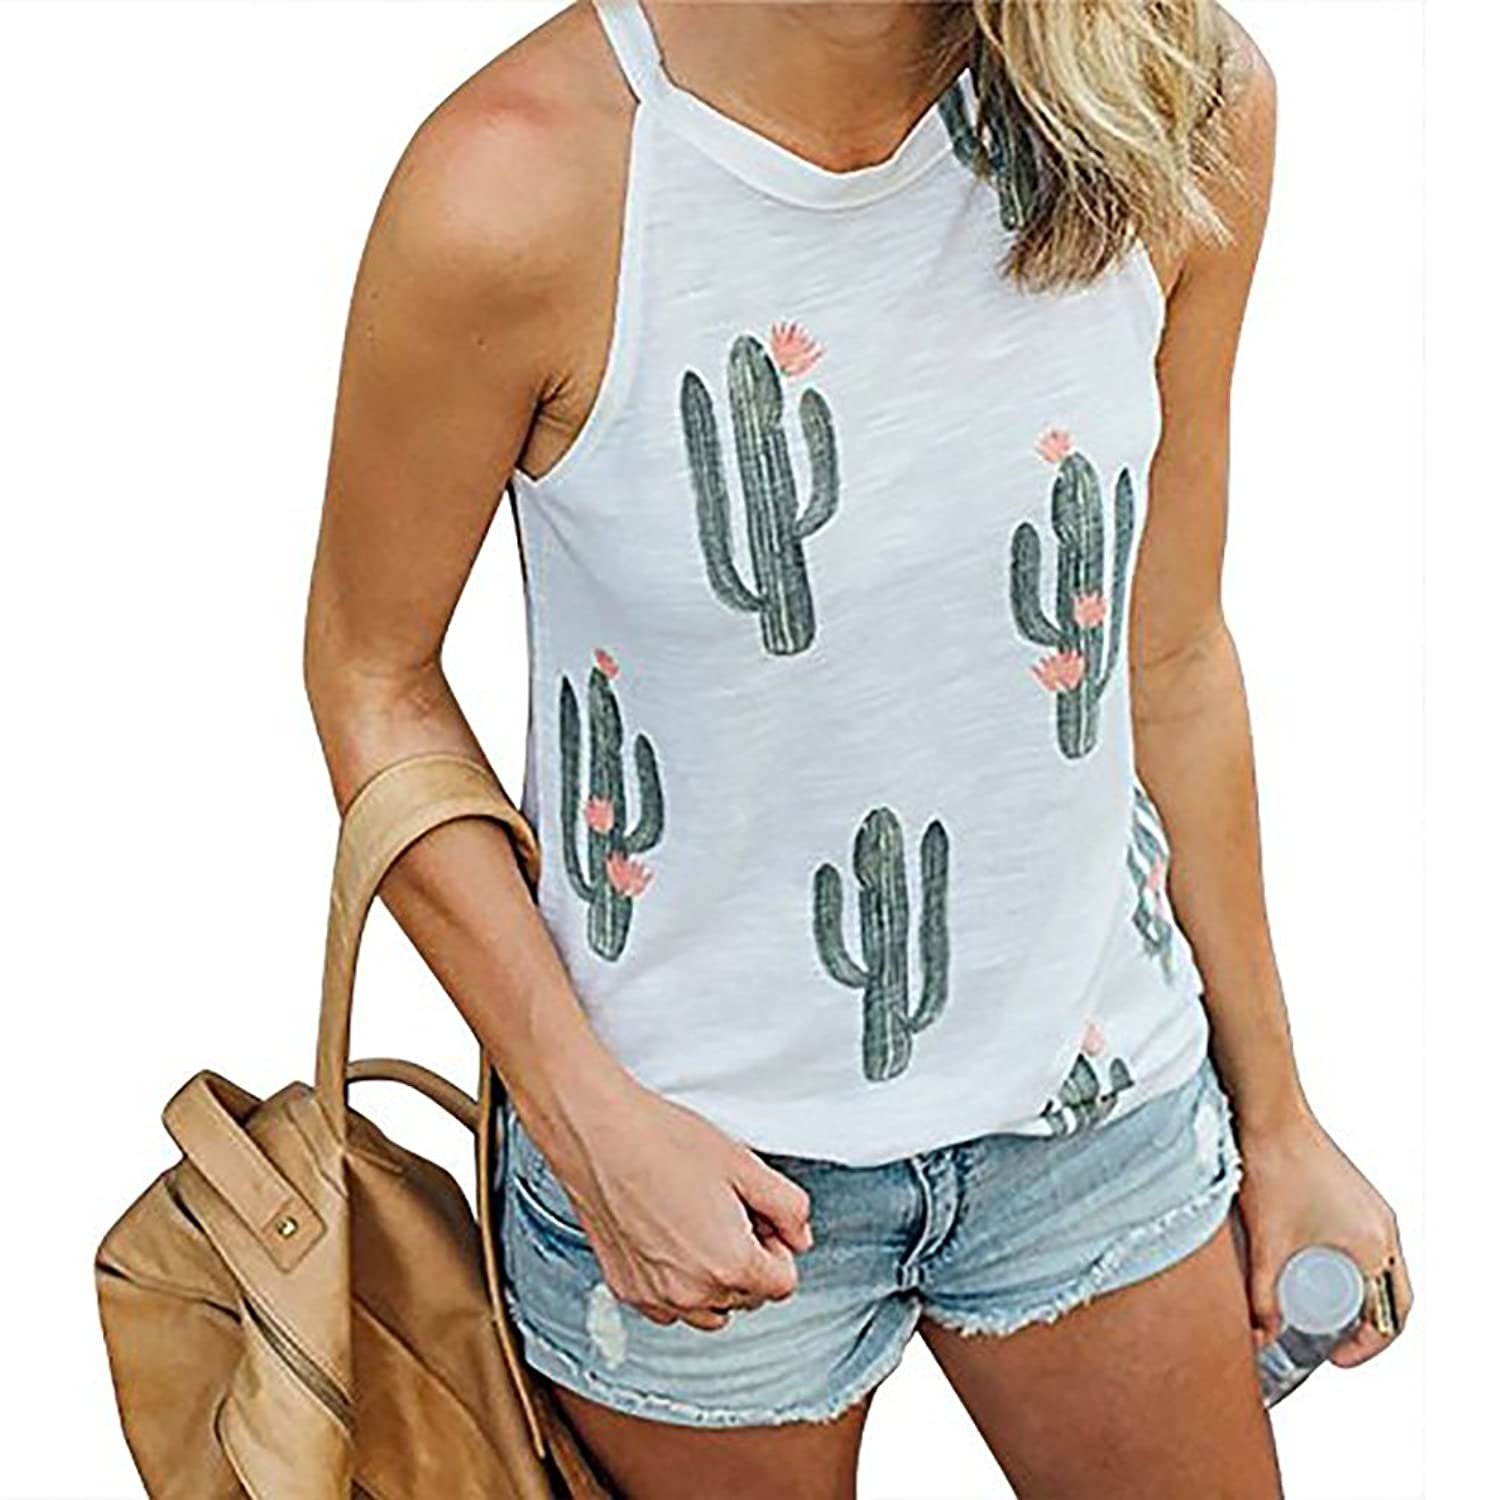 1b8afa0a52dc6b Top 10 wholesale Cactus Tops For Women - Chinabrands.com